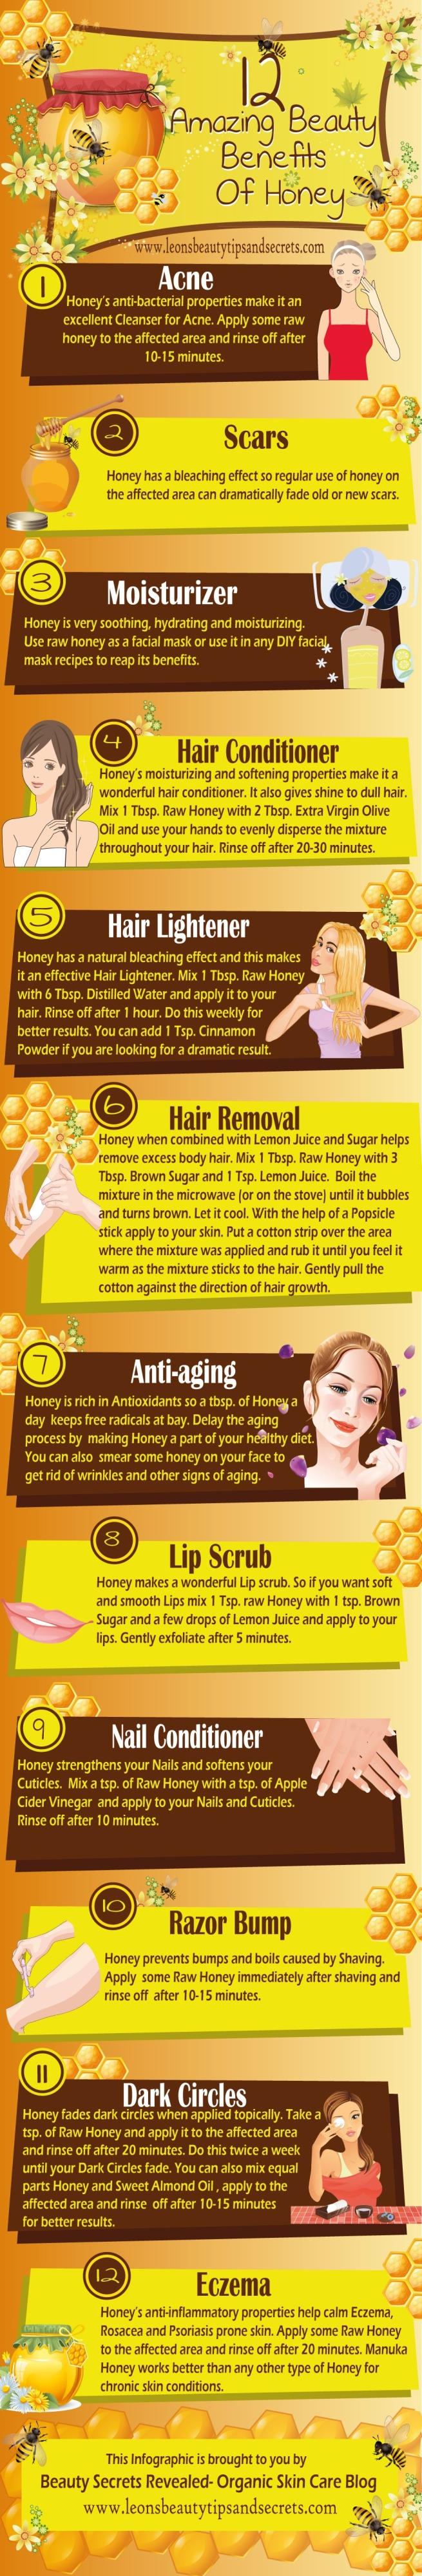 Beauty Benefits of Honey Infographic